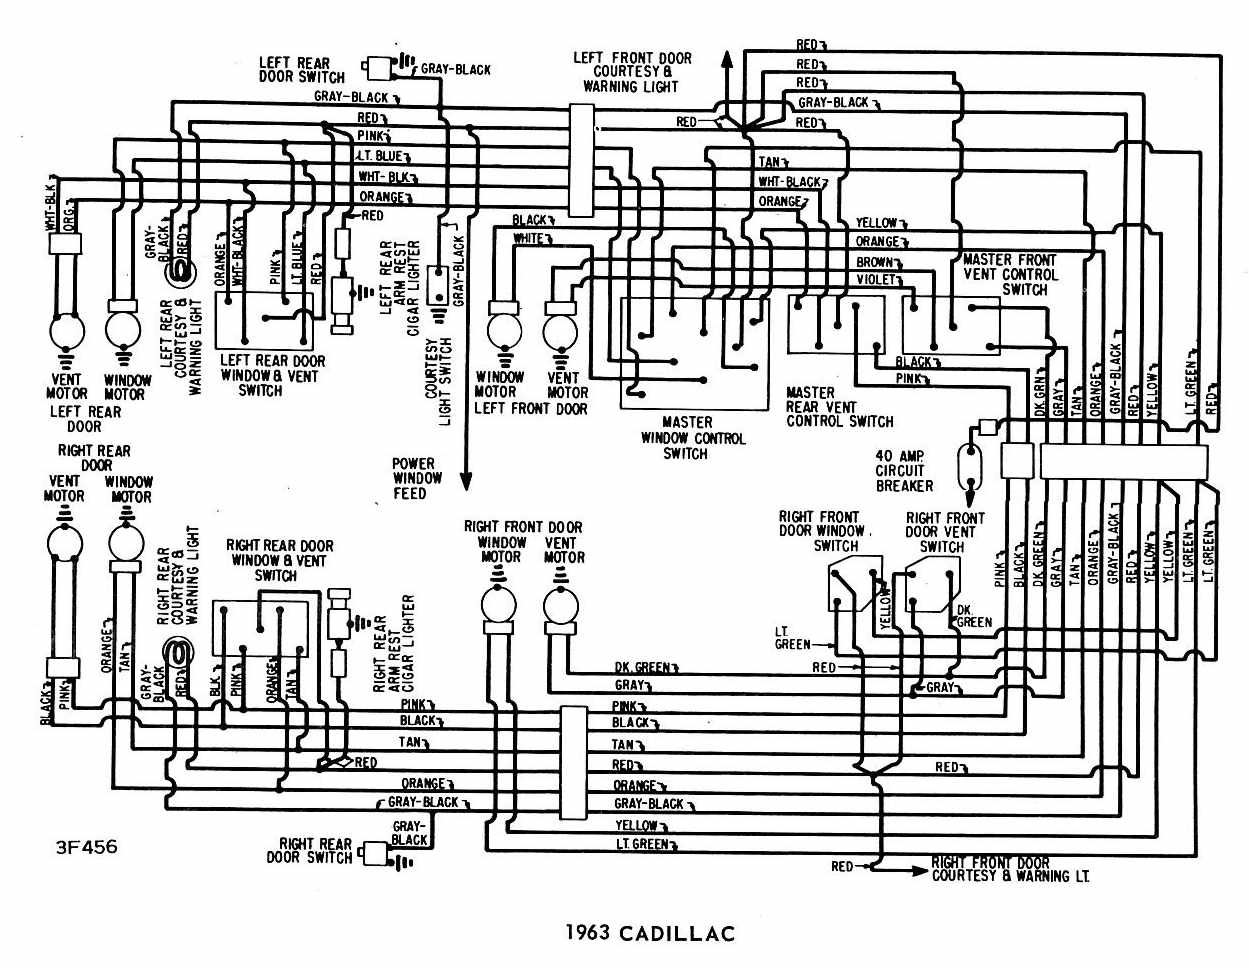 Cadillac+1963+Windows+Wiring+Diagram cadillac 1963 windows wiring diagram all about wiring diagrams Chevy Truck Wiring Diagram at cos-gaming.co